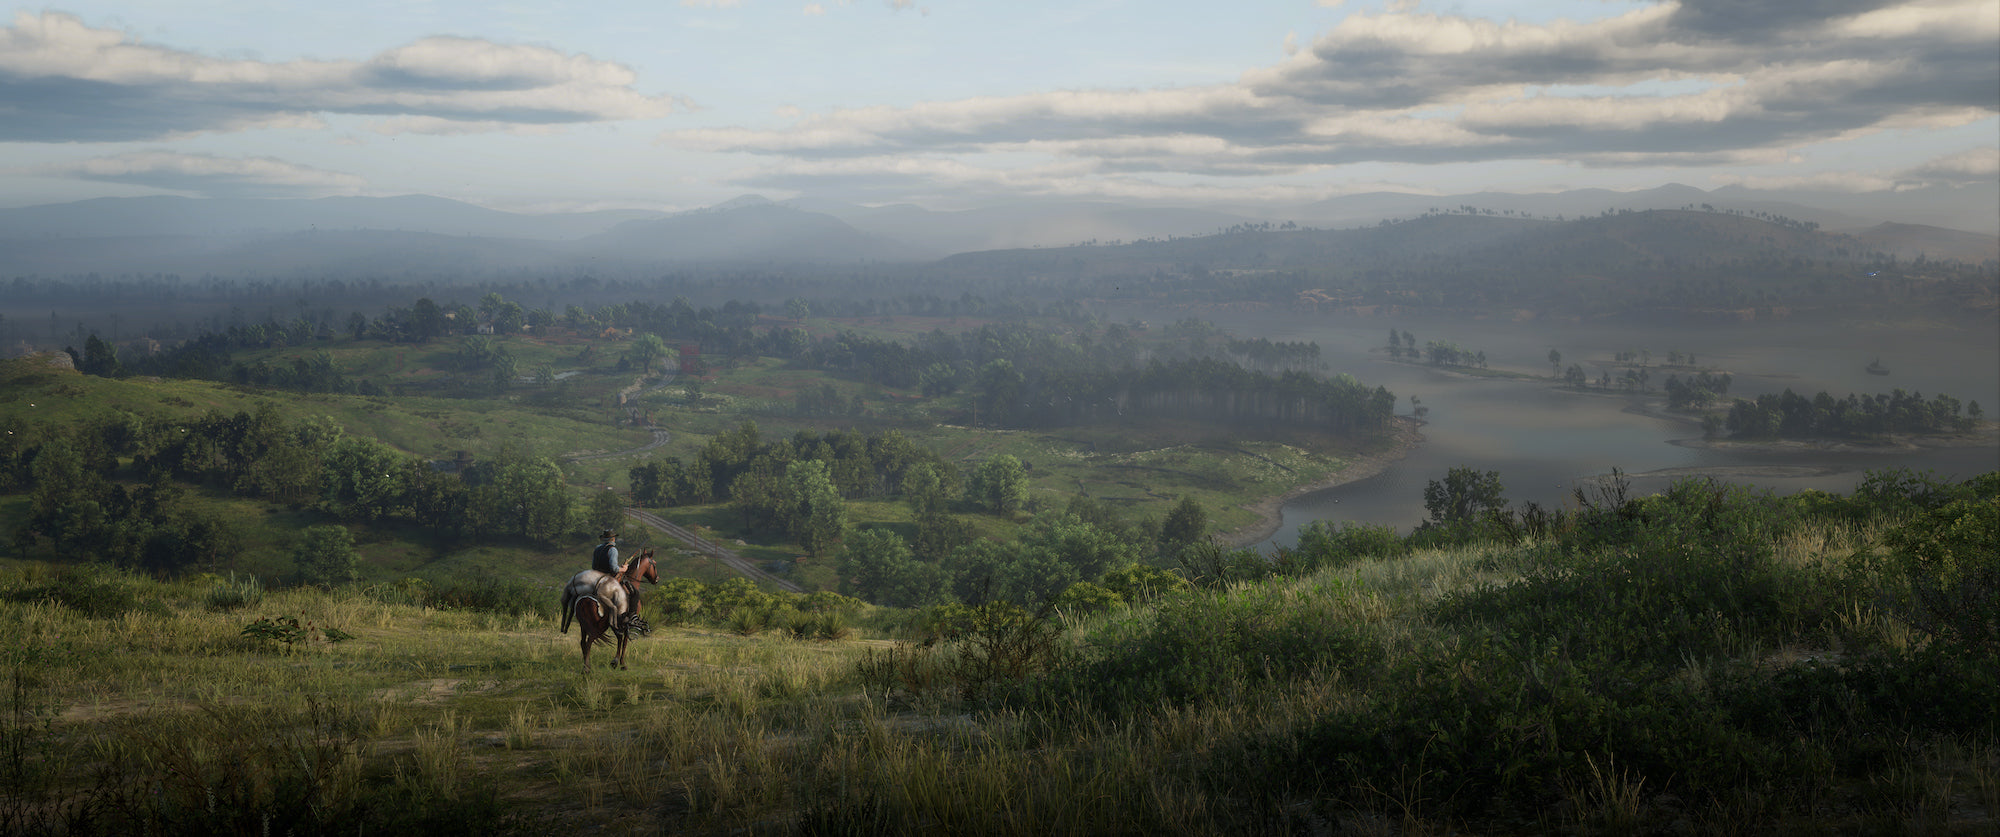 Red Dead Redemption 2 shot by Jim2point0.